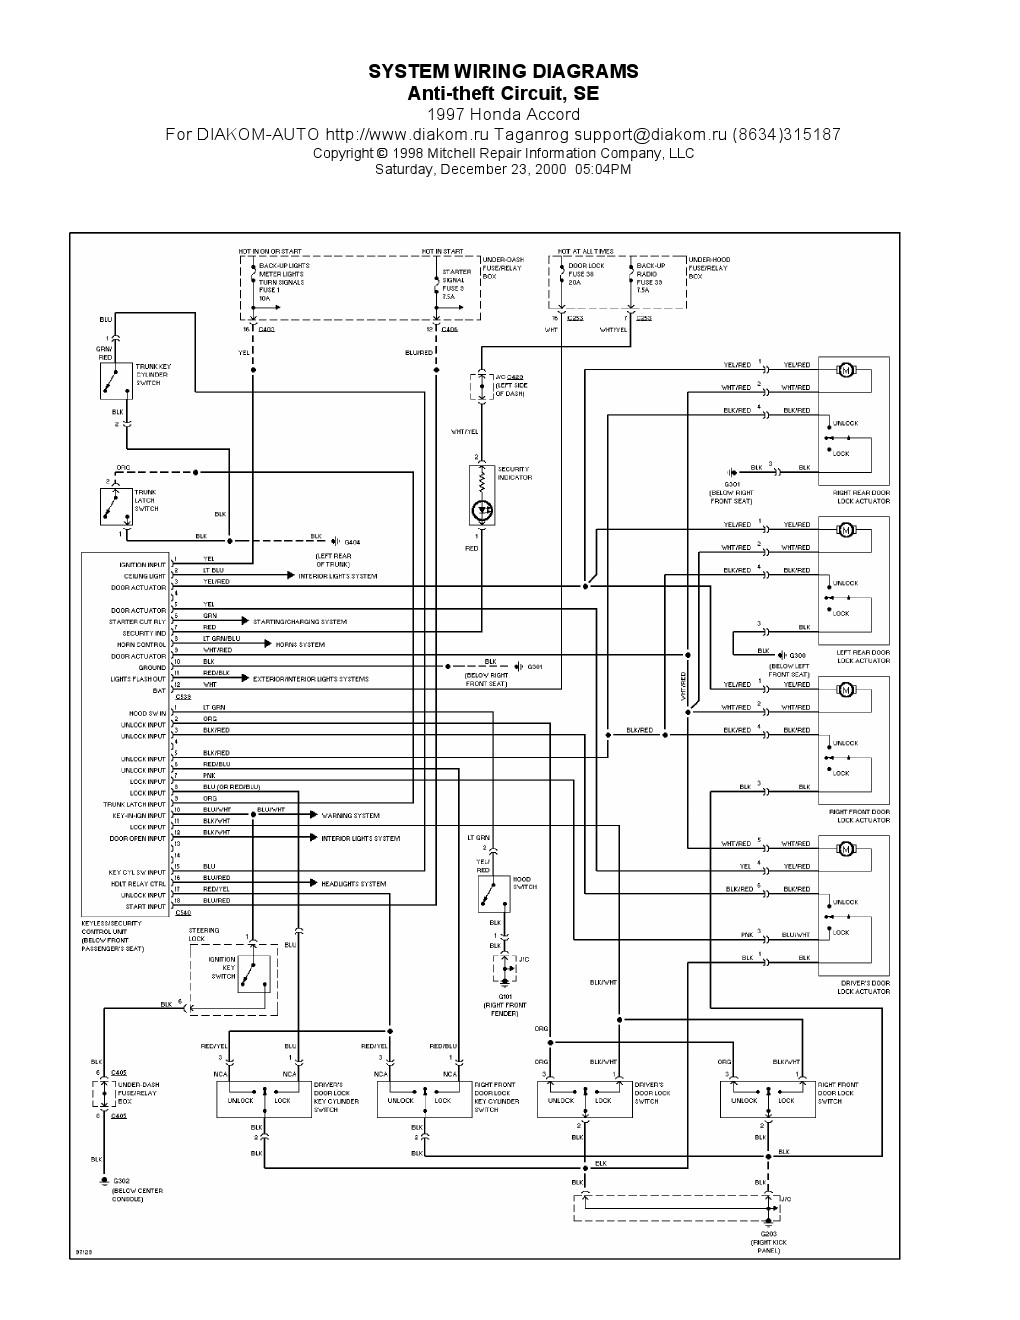 Honda Accord Anti Theft Circuit Se C System Wiring Diagrams on 2000 Infiniti Qx4 Problems